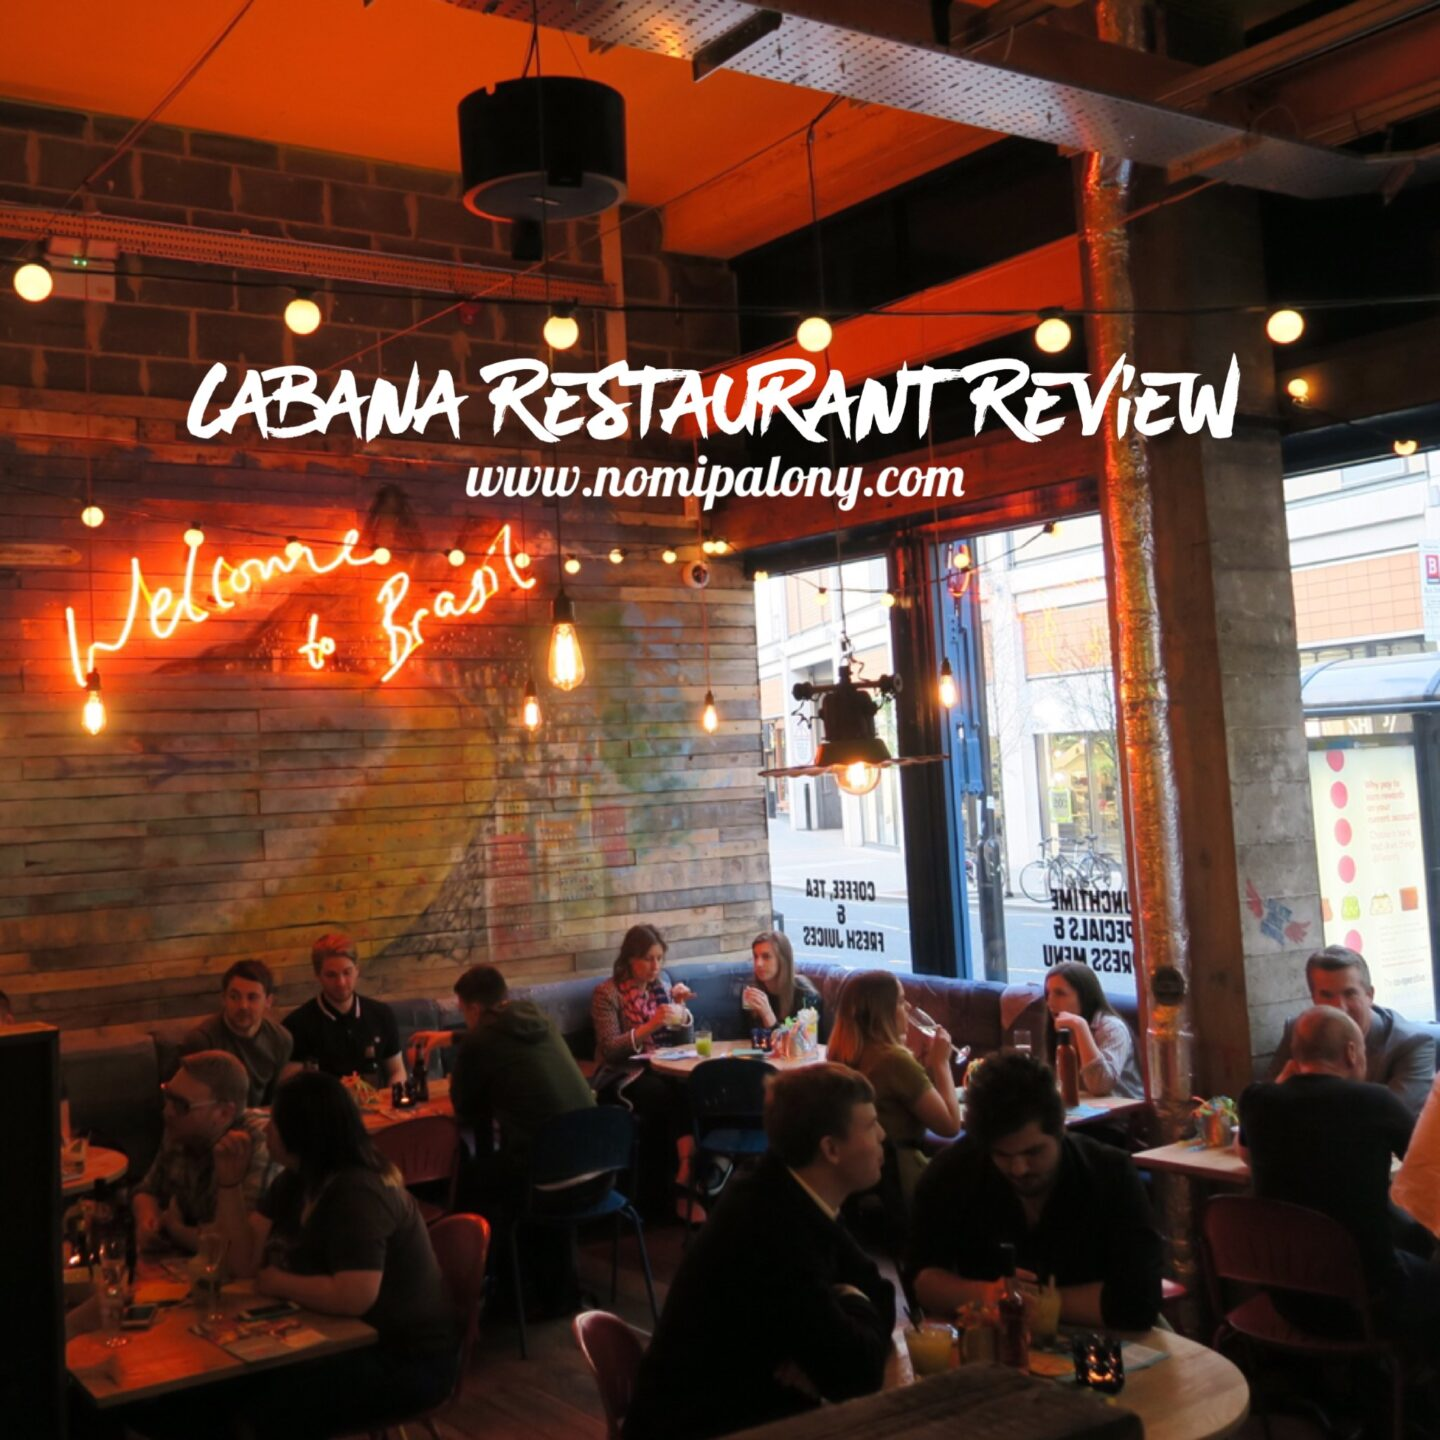 Restaurant Review: Cabana Brasilian Barbeque, Newcastle